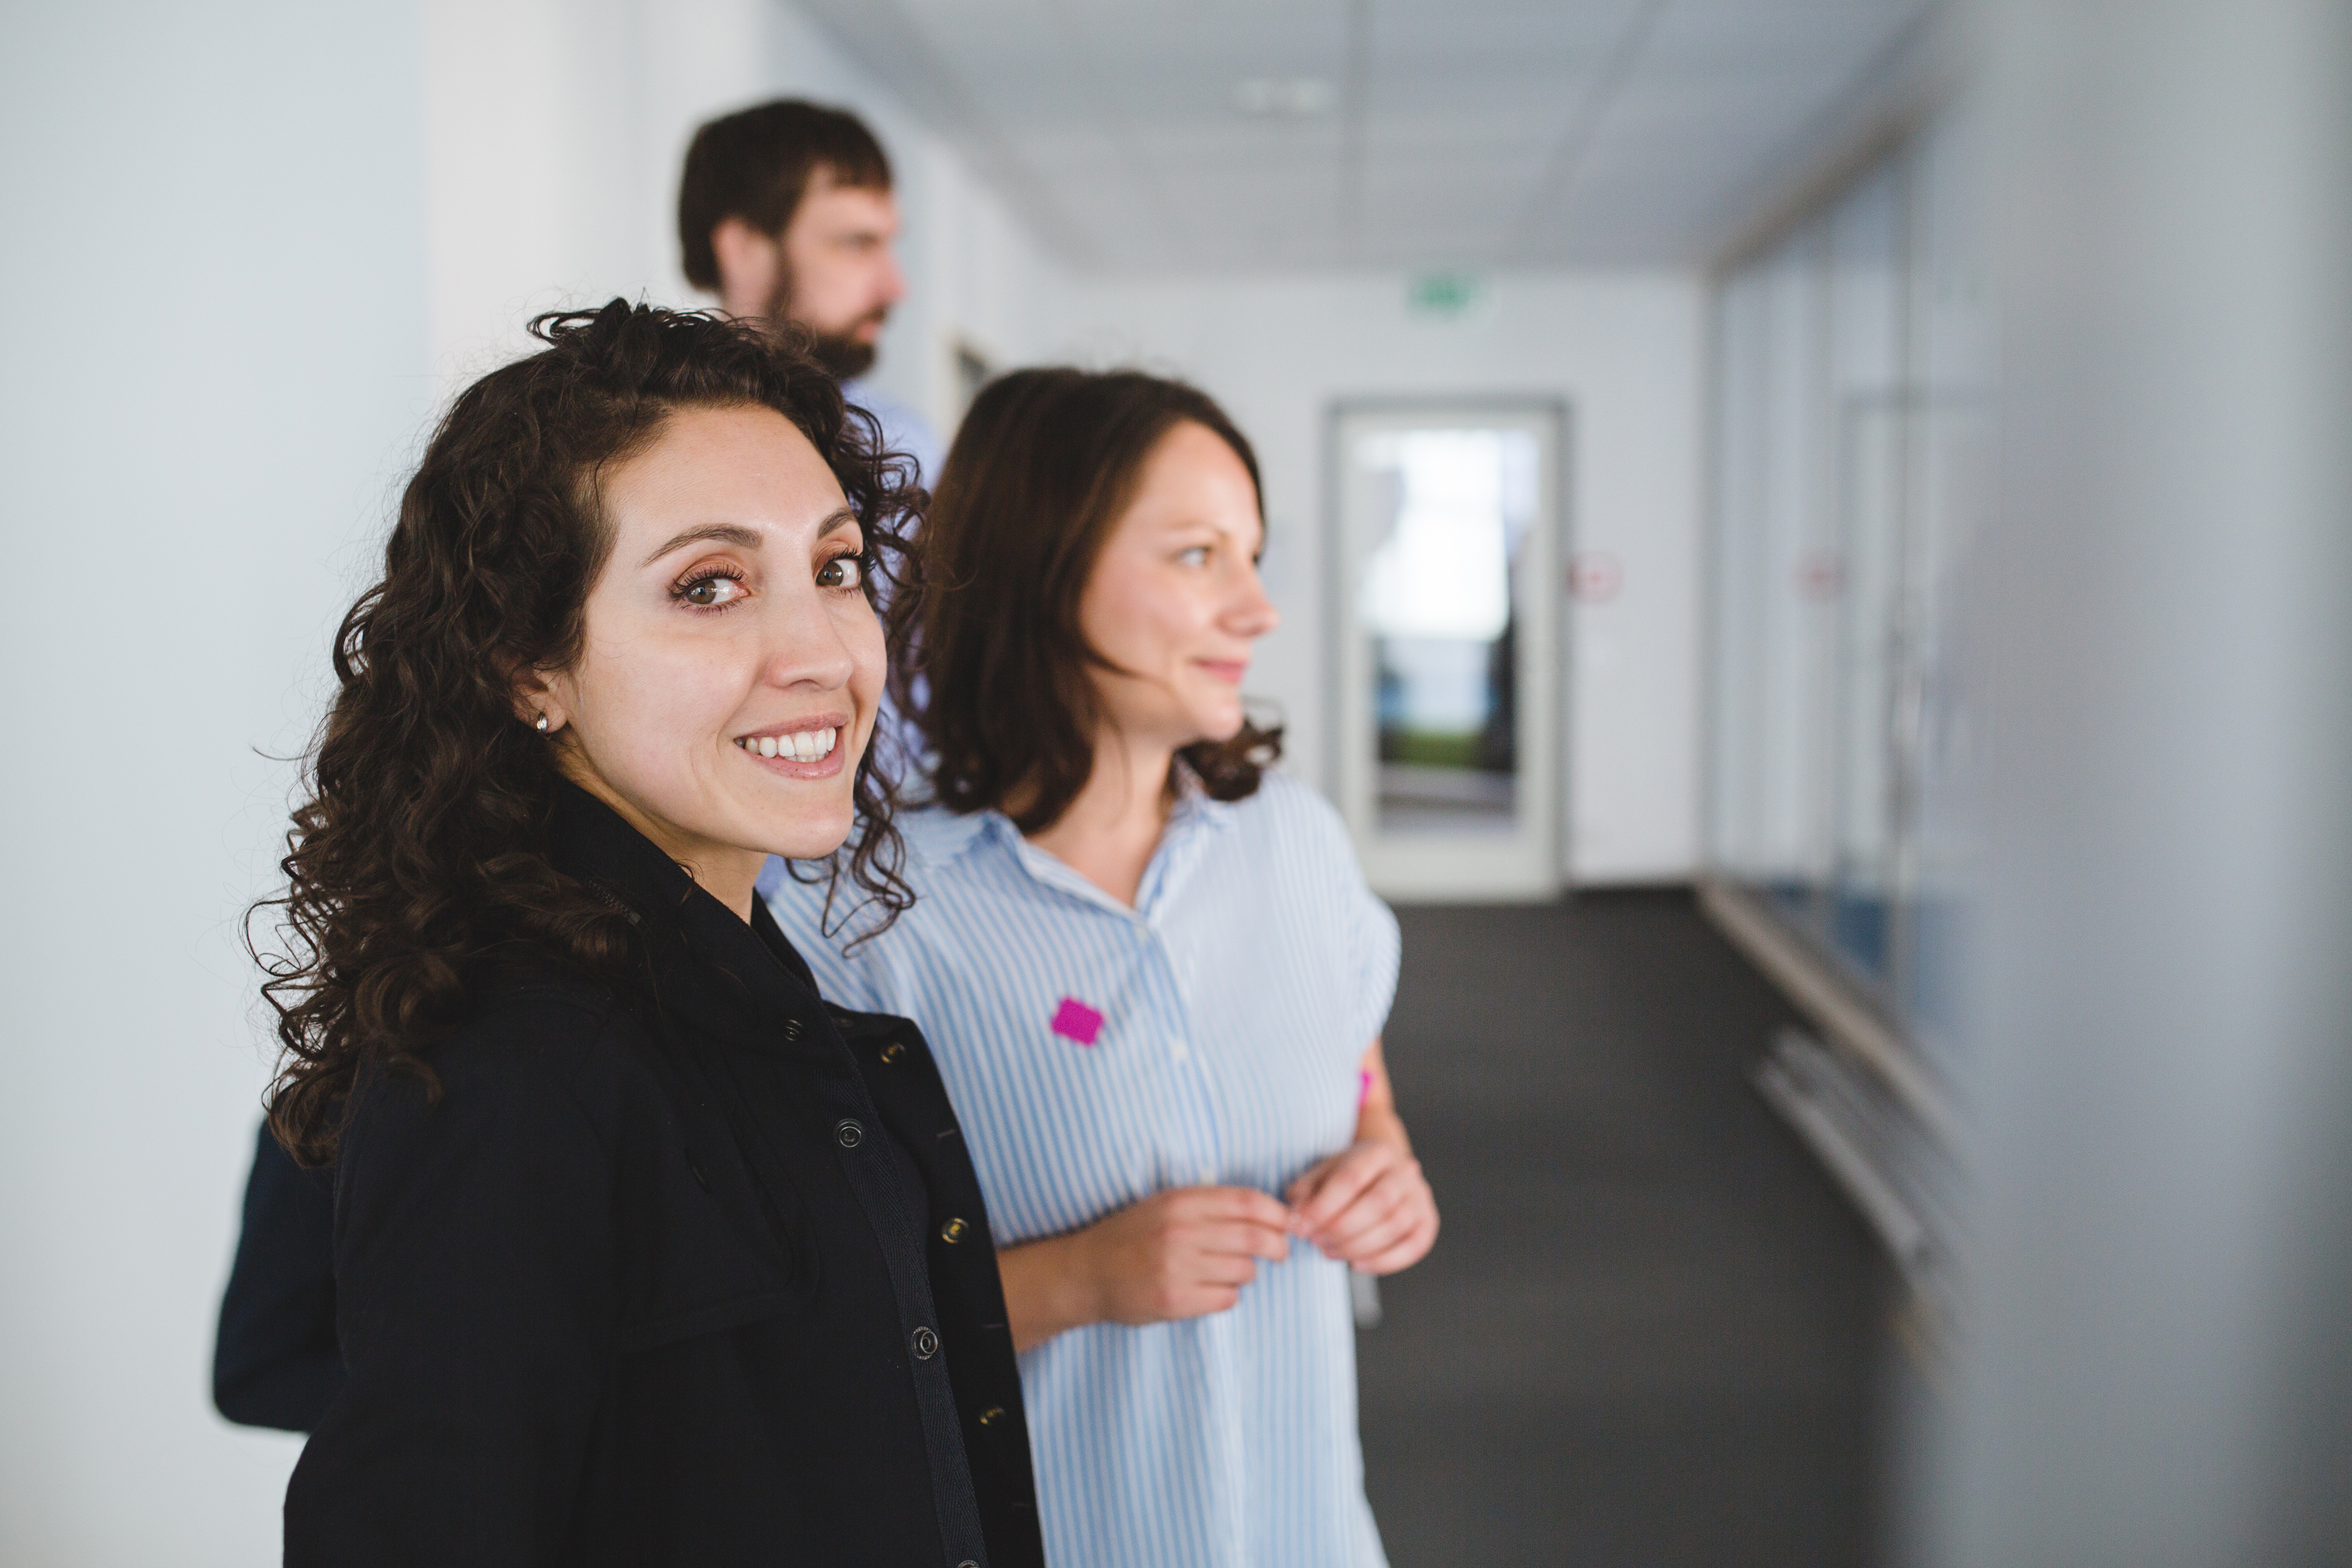 Two women and one man in a office hallway